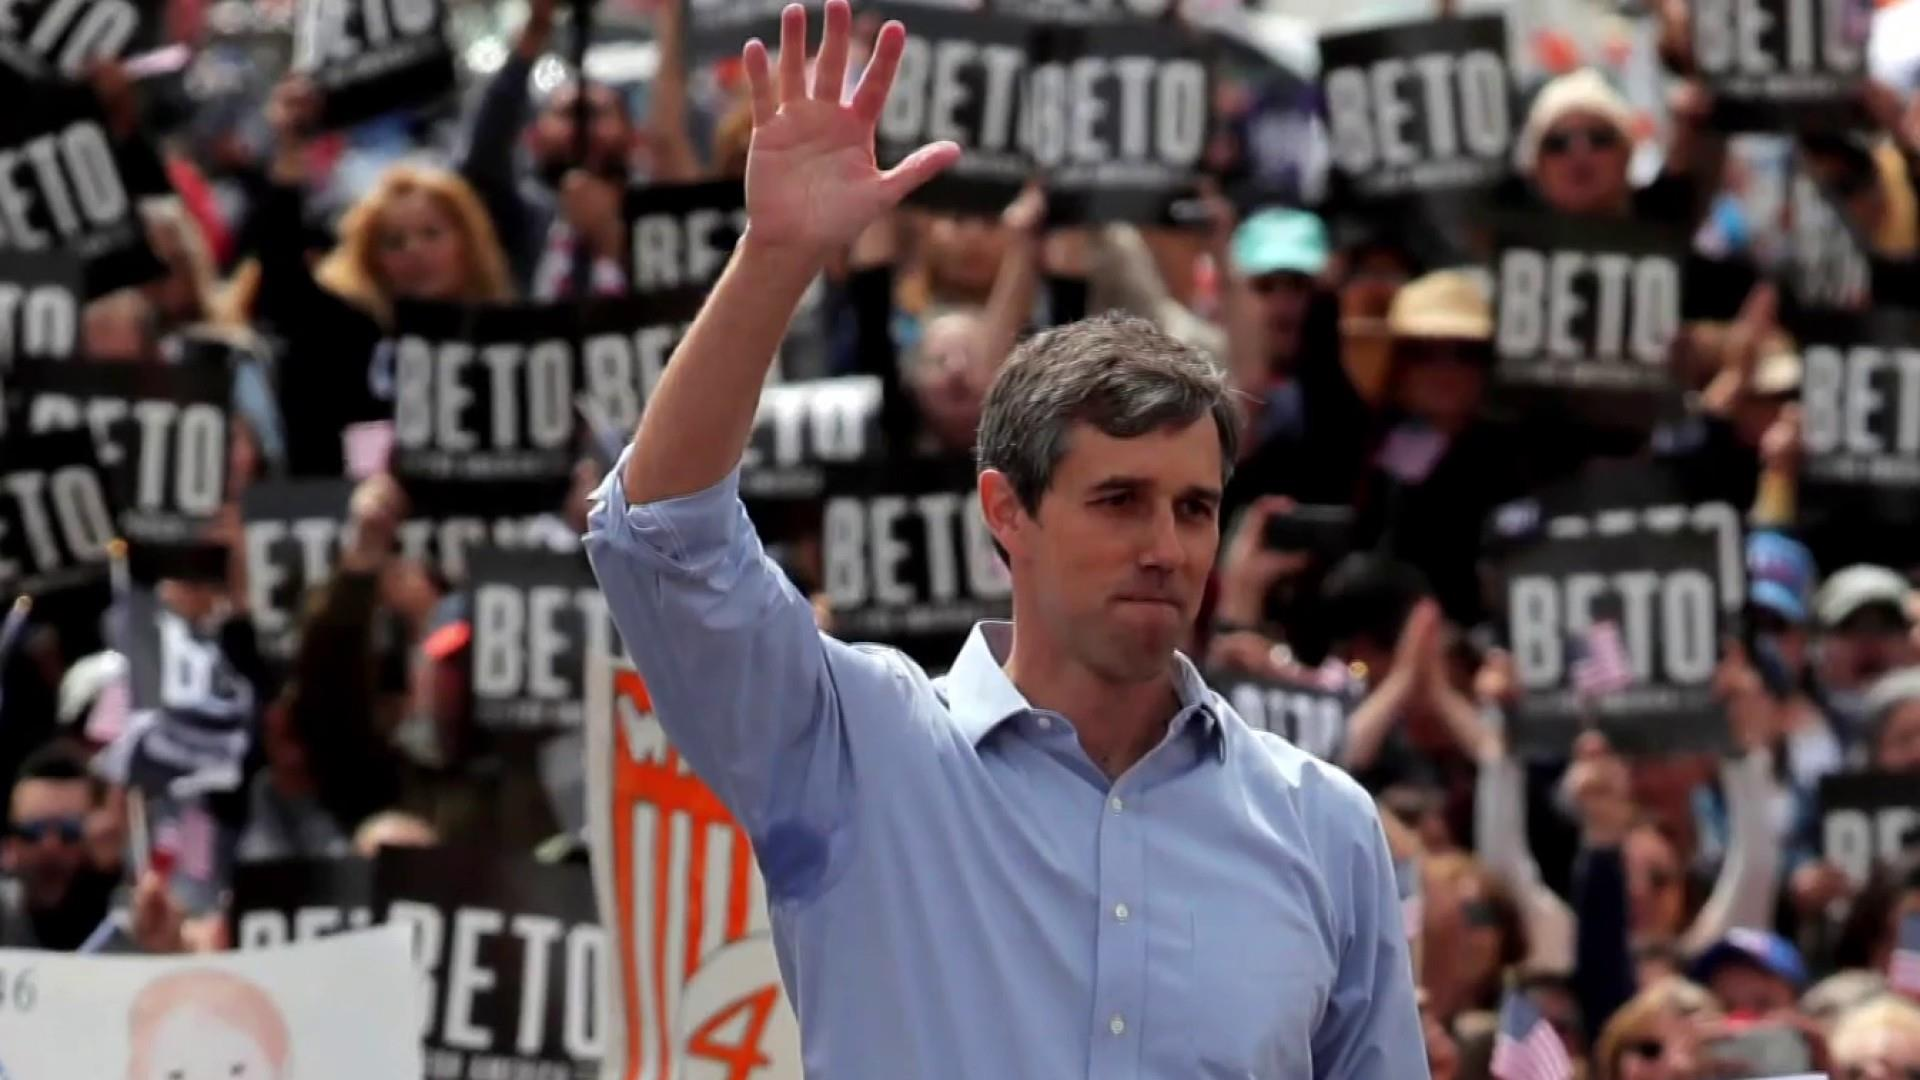 Beto's campaign re-boot: Will it work?